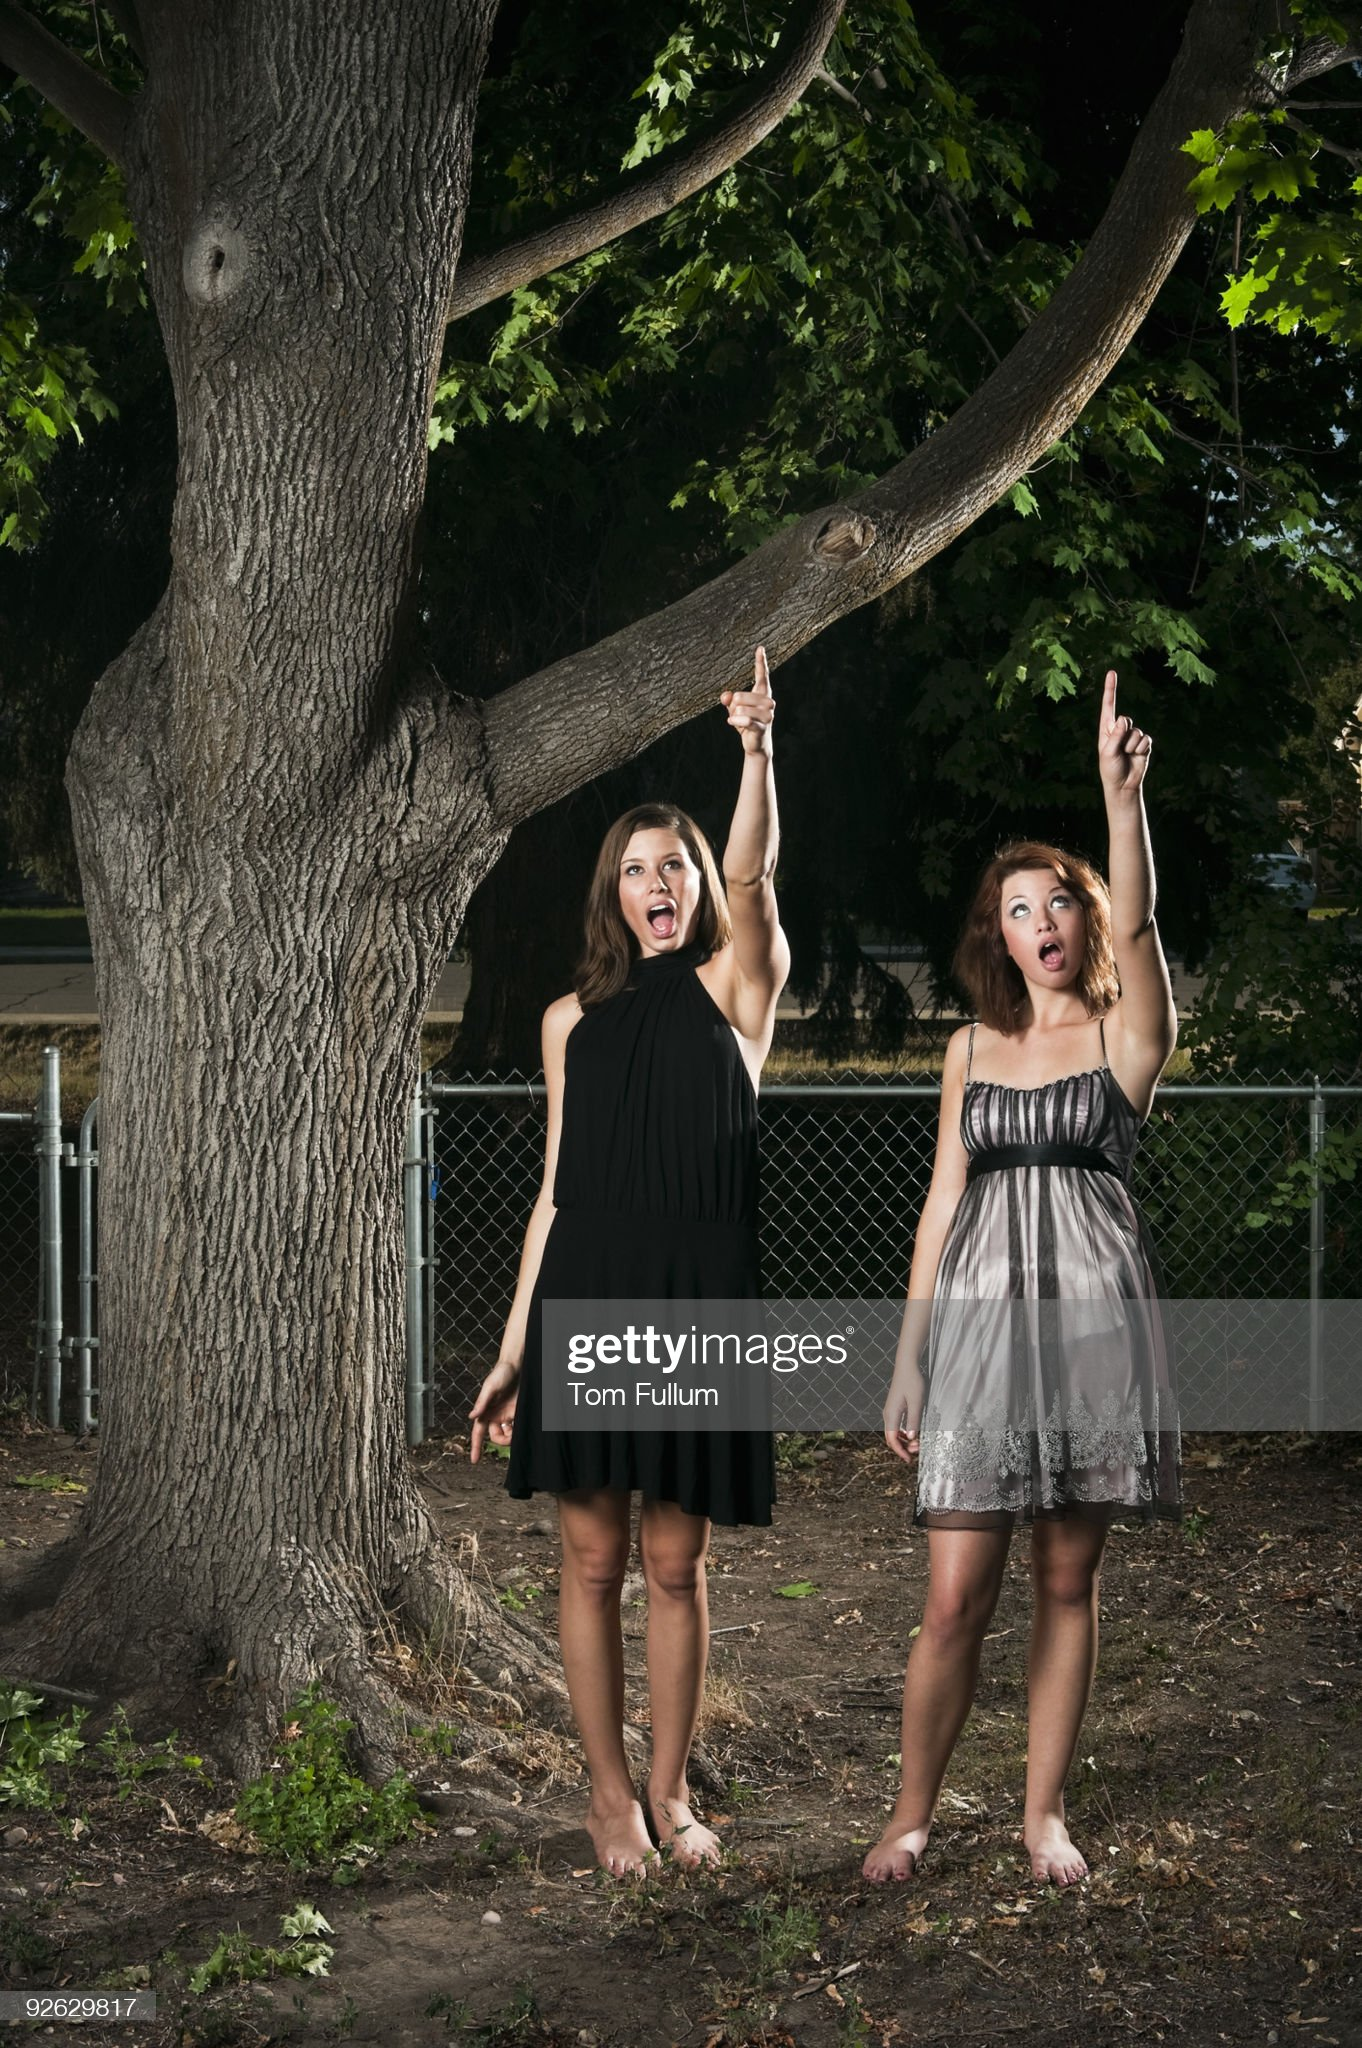 https://media.gettyimages.com/photos/two-excited-young-woman-pointing-picture-id92629817?s=2048x2048